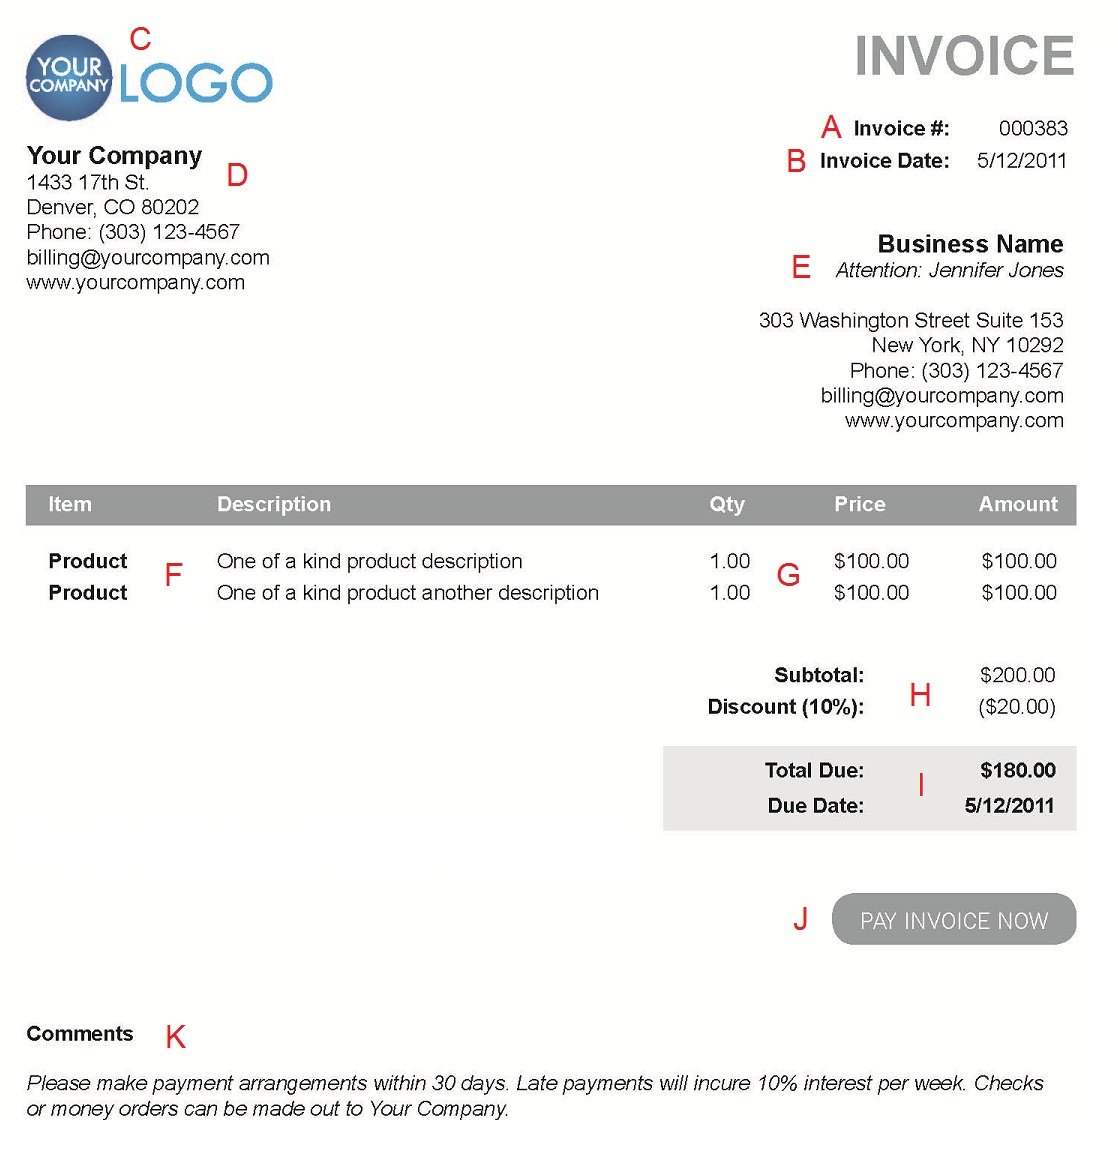 Pxworkoutfreeus  Marvellous The  Different Sections Of An Electronic Payment Invoice With Likable A  With Enchanting Free Download Invoice Template Also Cleaning Service Invoice In Addition Small Business Invoicing Software And Boat Invoice Prices As Well As Payment Terms Examples Invoices Additionally Invoice Pdf Template From Paysimplecom With Pxworkoutfreeus  Likable The  Different Sections Of An Electronic Payment Invoice With Enchanting A  And Marvellous Free Download Invoice Template Also Cleaning Service Invoice In Addition Small Business Invoicing Software From Paysimplecom